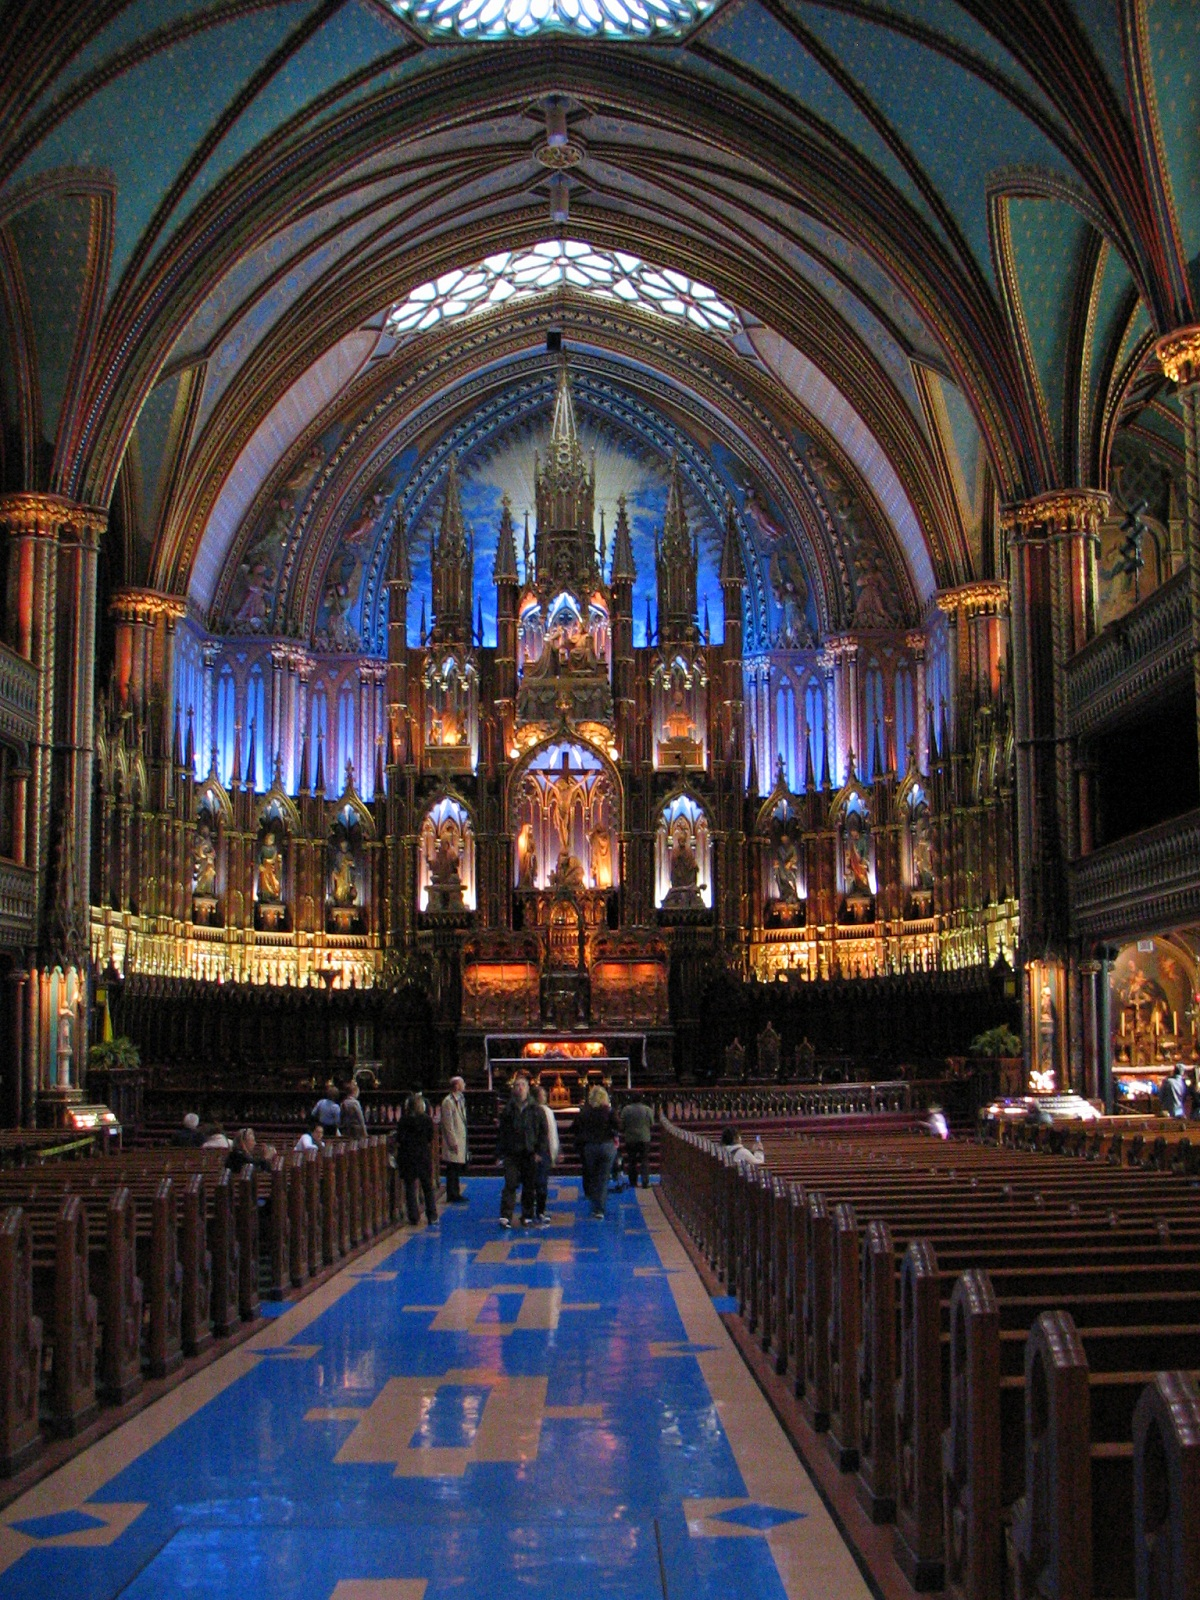 Notre Dame Basilica, Montreal, Canada, Visited by pilgrims